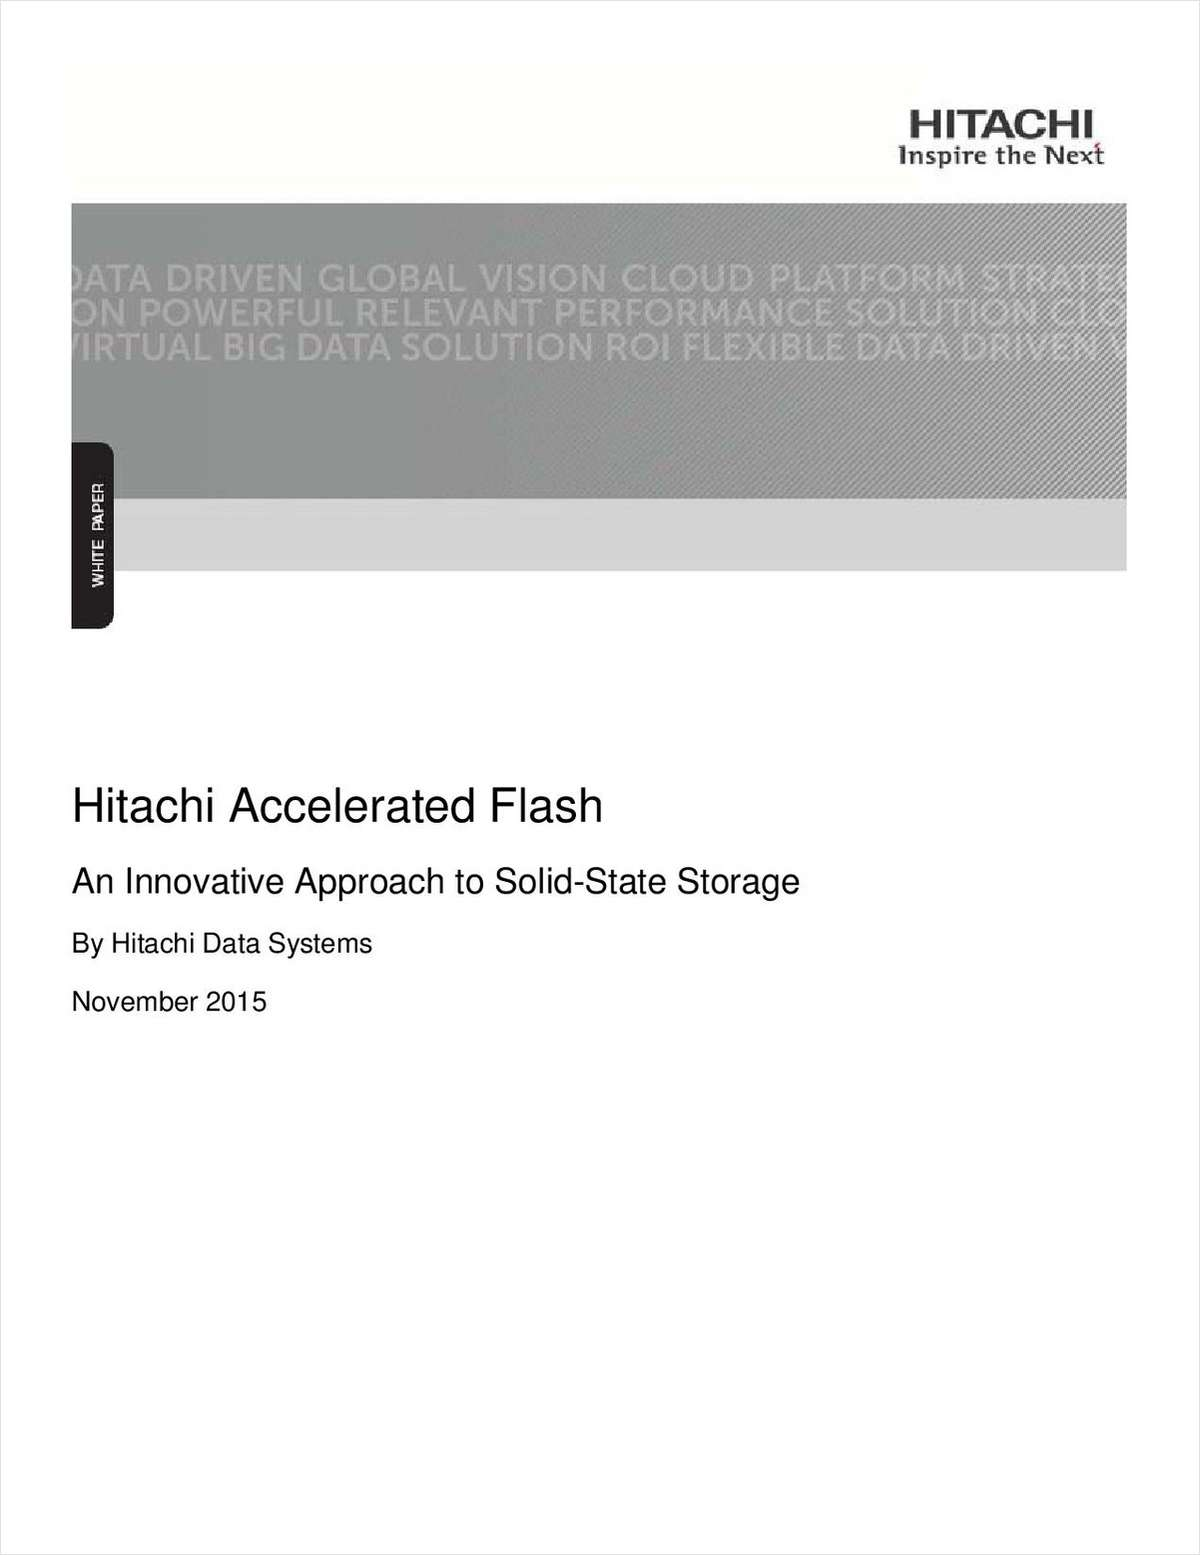 Hitachi Accelerated Flash: An Innovative Approach to Solid State Storage